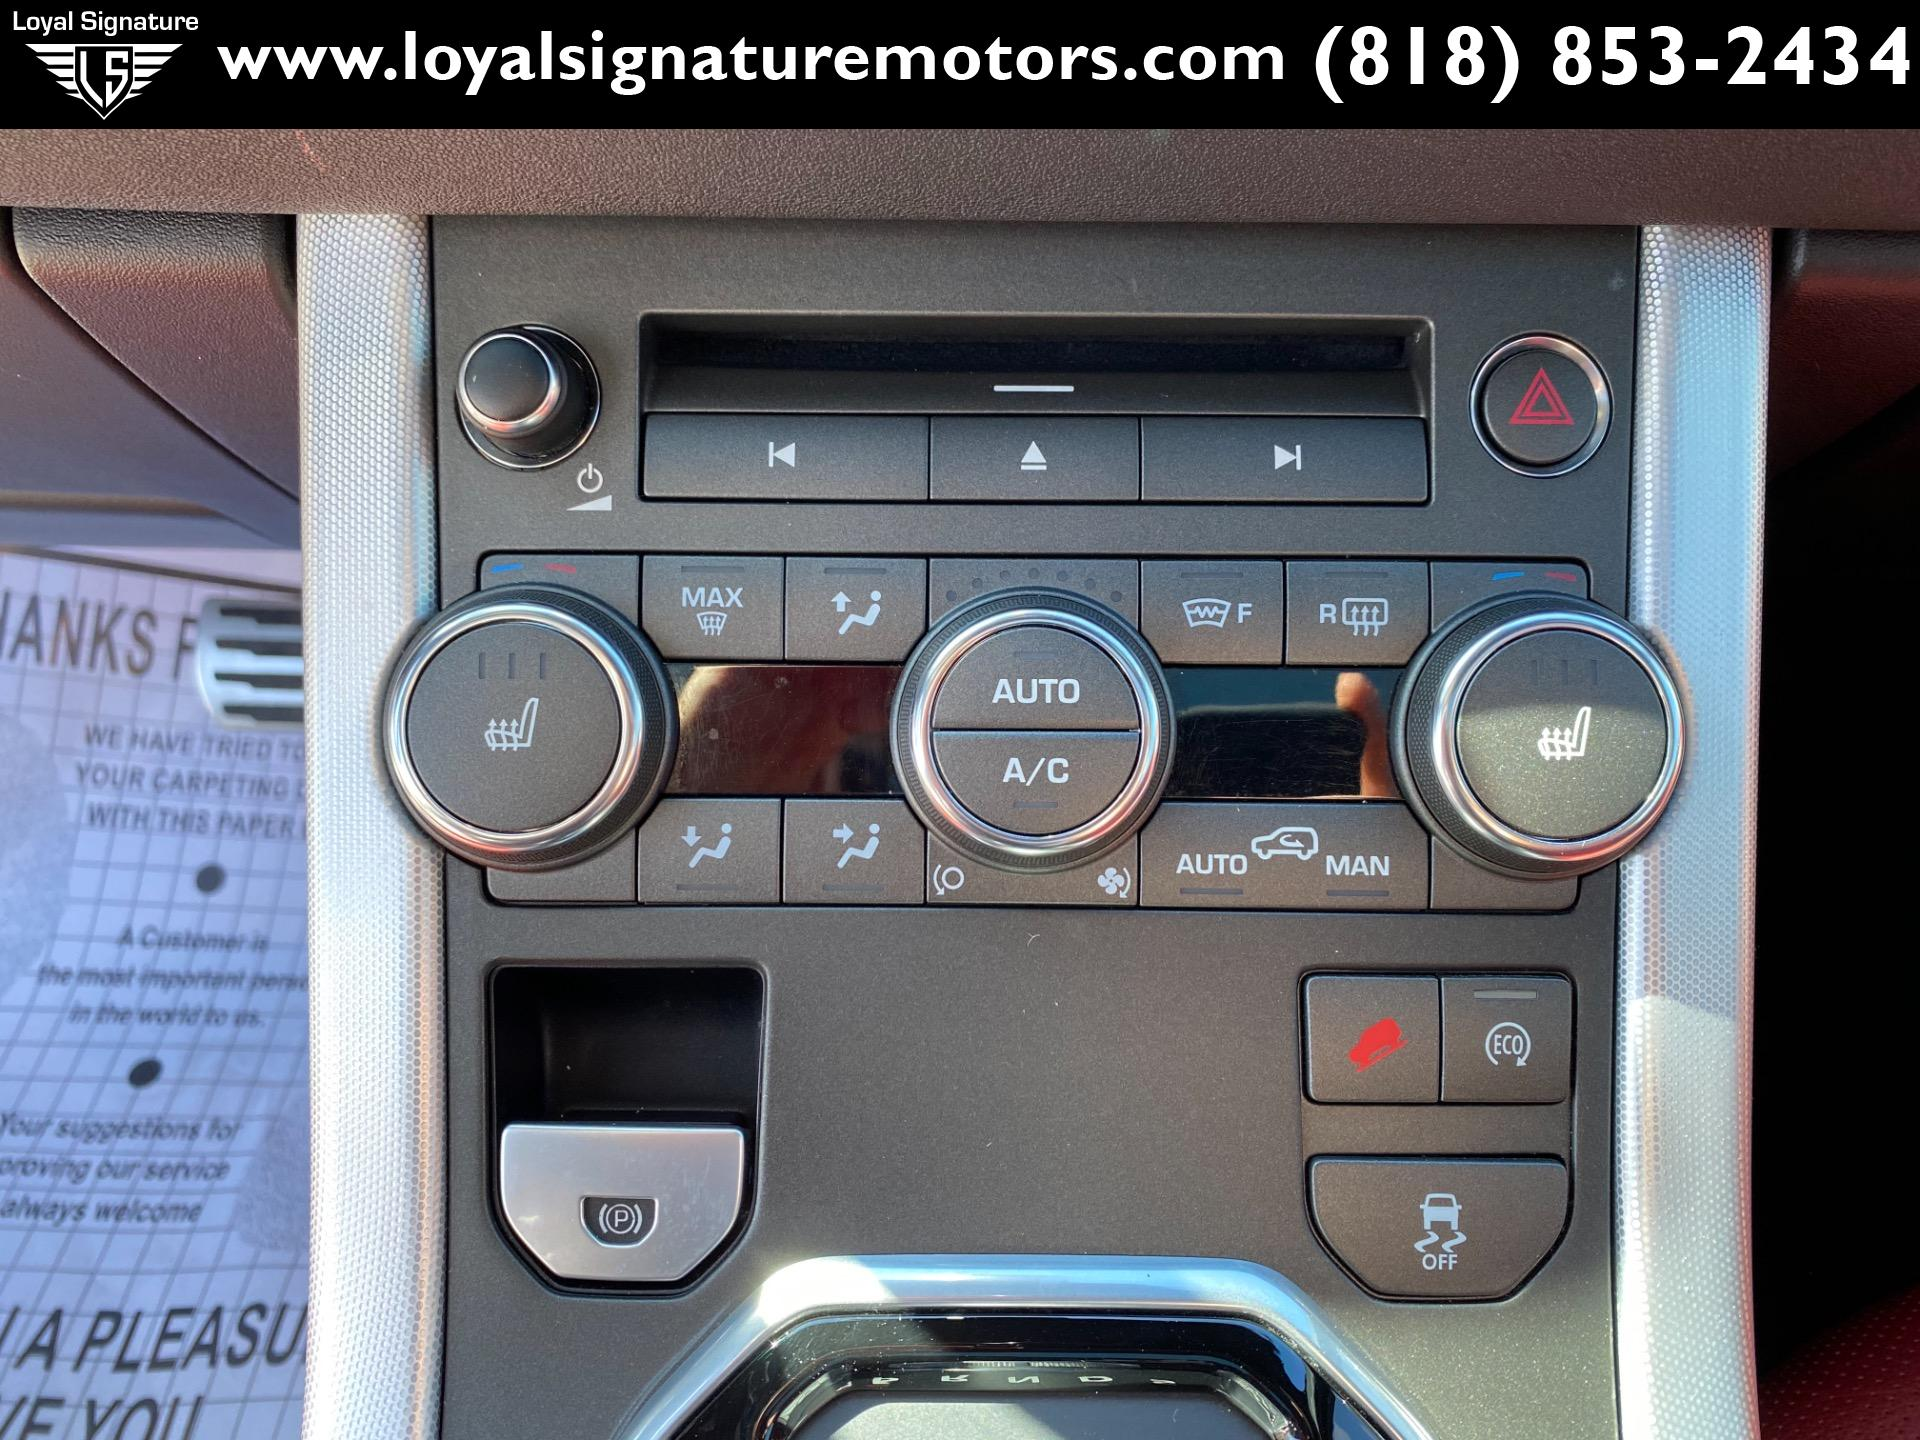 Used-2015-Land-Rover-Range-Rover-Evoque-Coupe-Dynamic